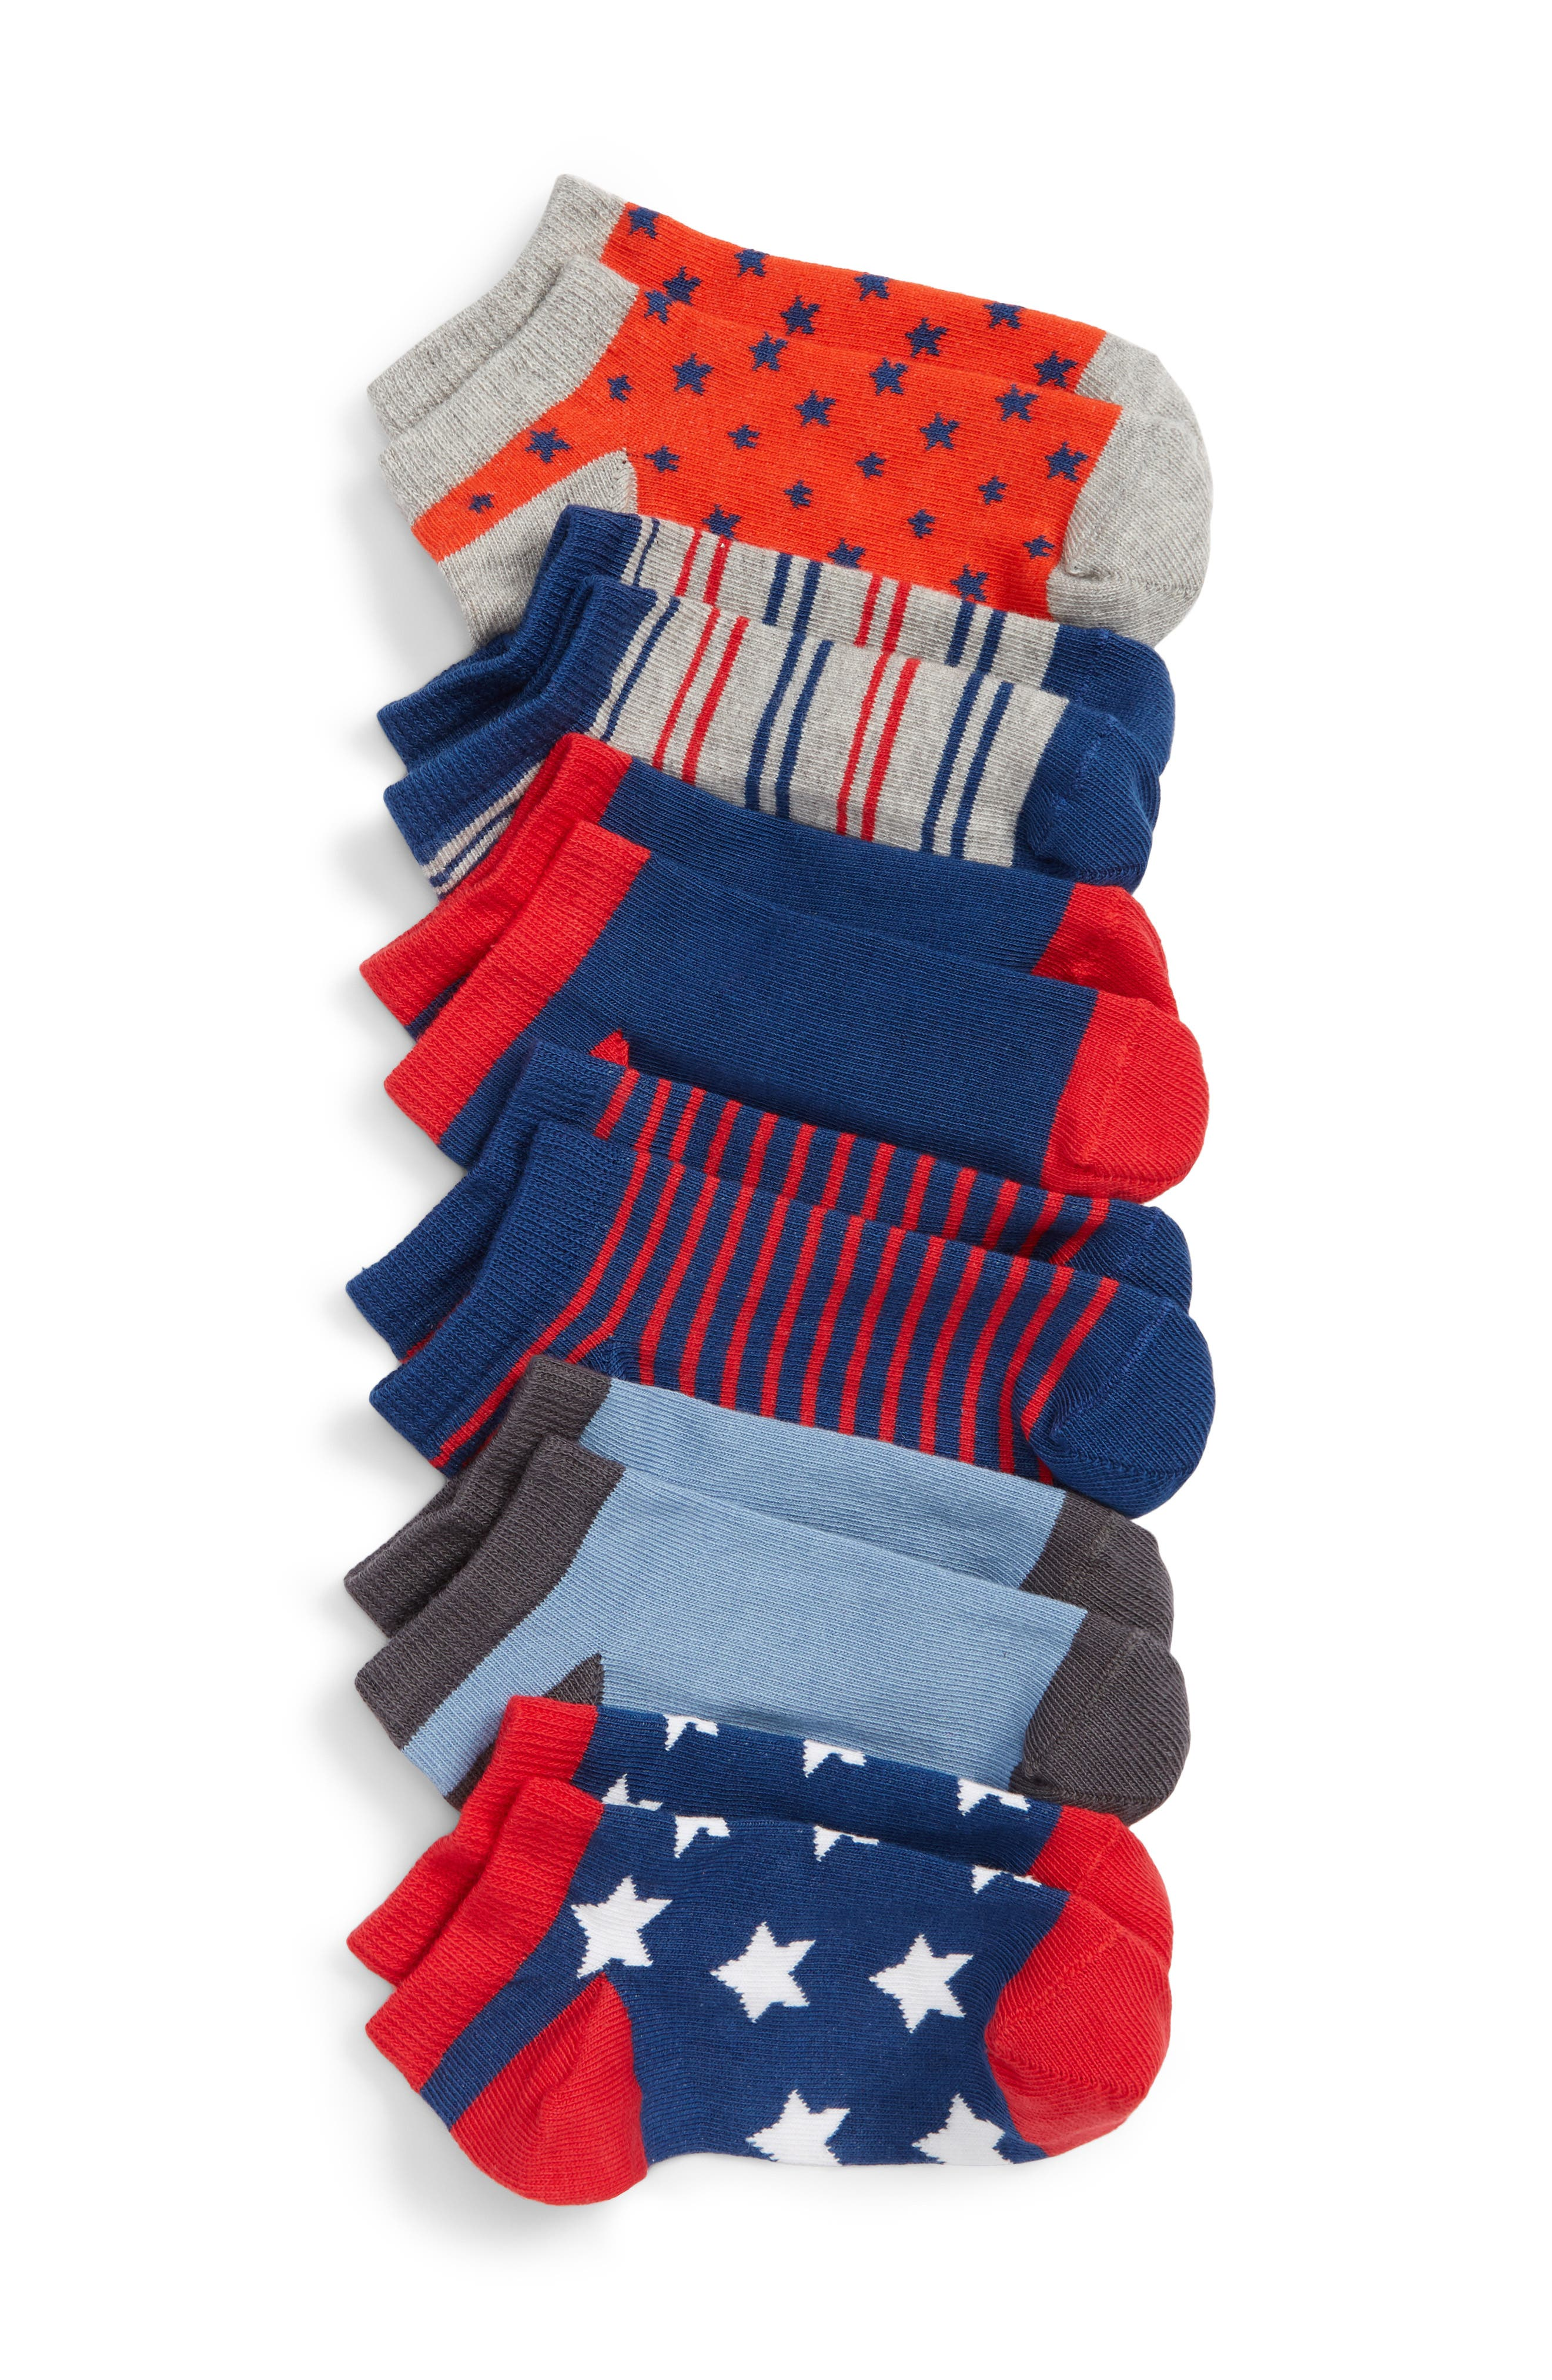 6-Pack Stars and Stripes Low Cut Socks,                         Main,                         color, NAVY DENIM MULTI